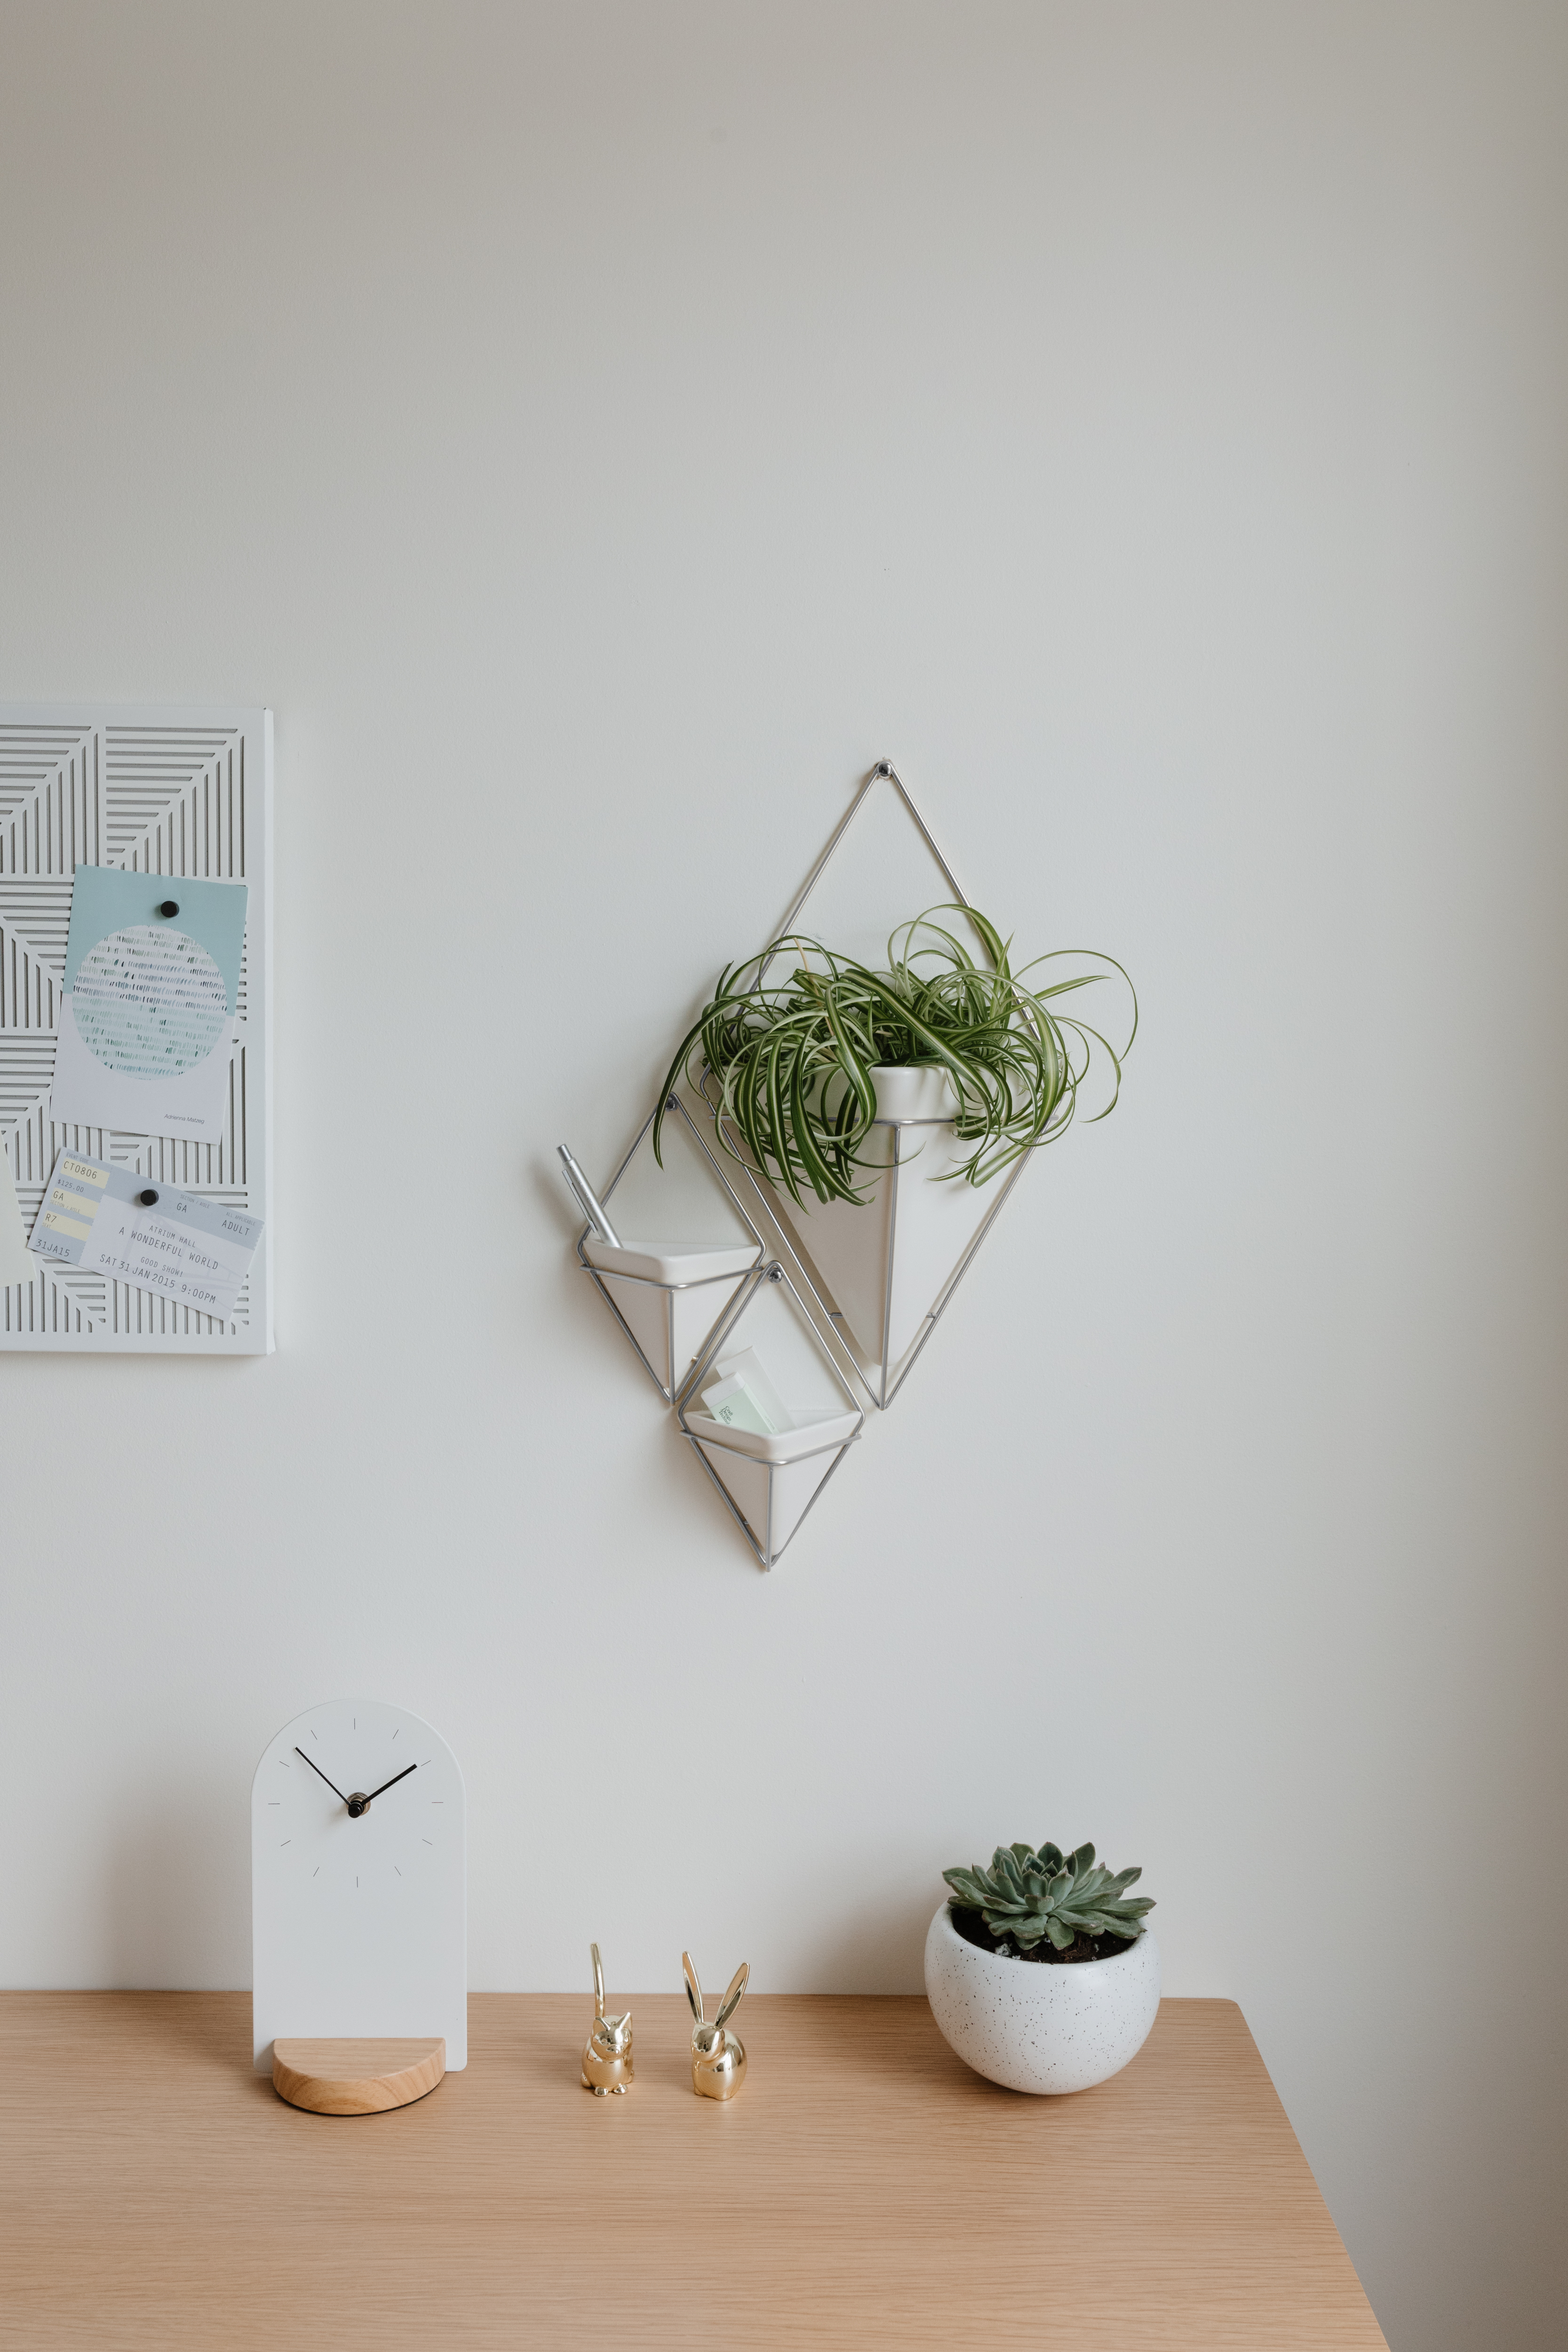 Trigg Hanging Planter Vase & Geometric Wall Decor Container – Great Within Most Recent Trigg Ceramic Planter Wall Decor (View 17 of 20)